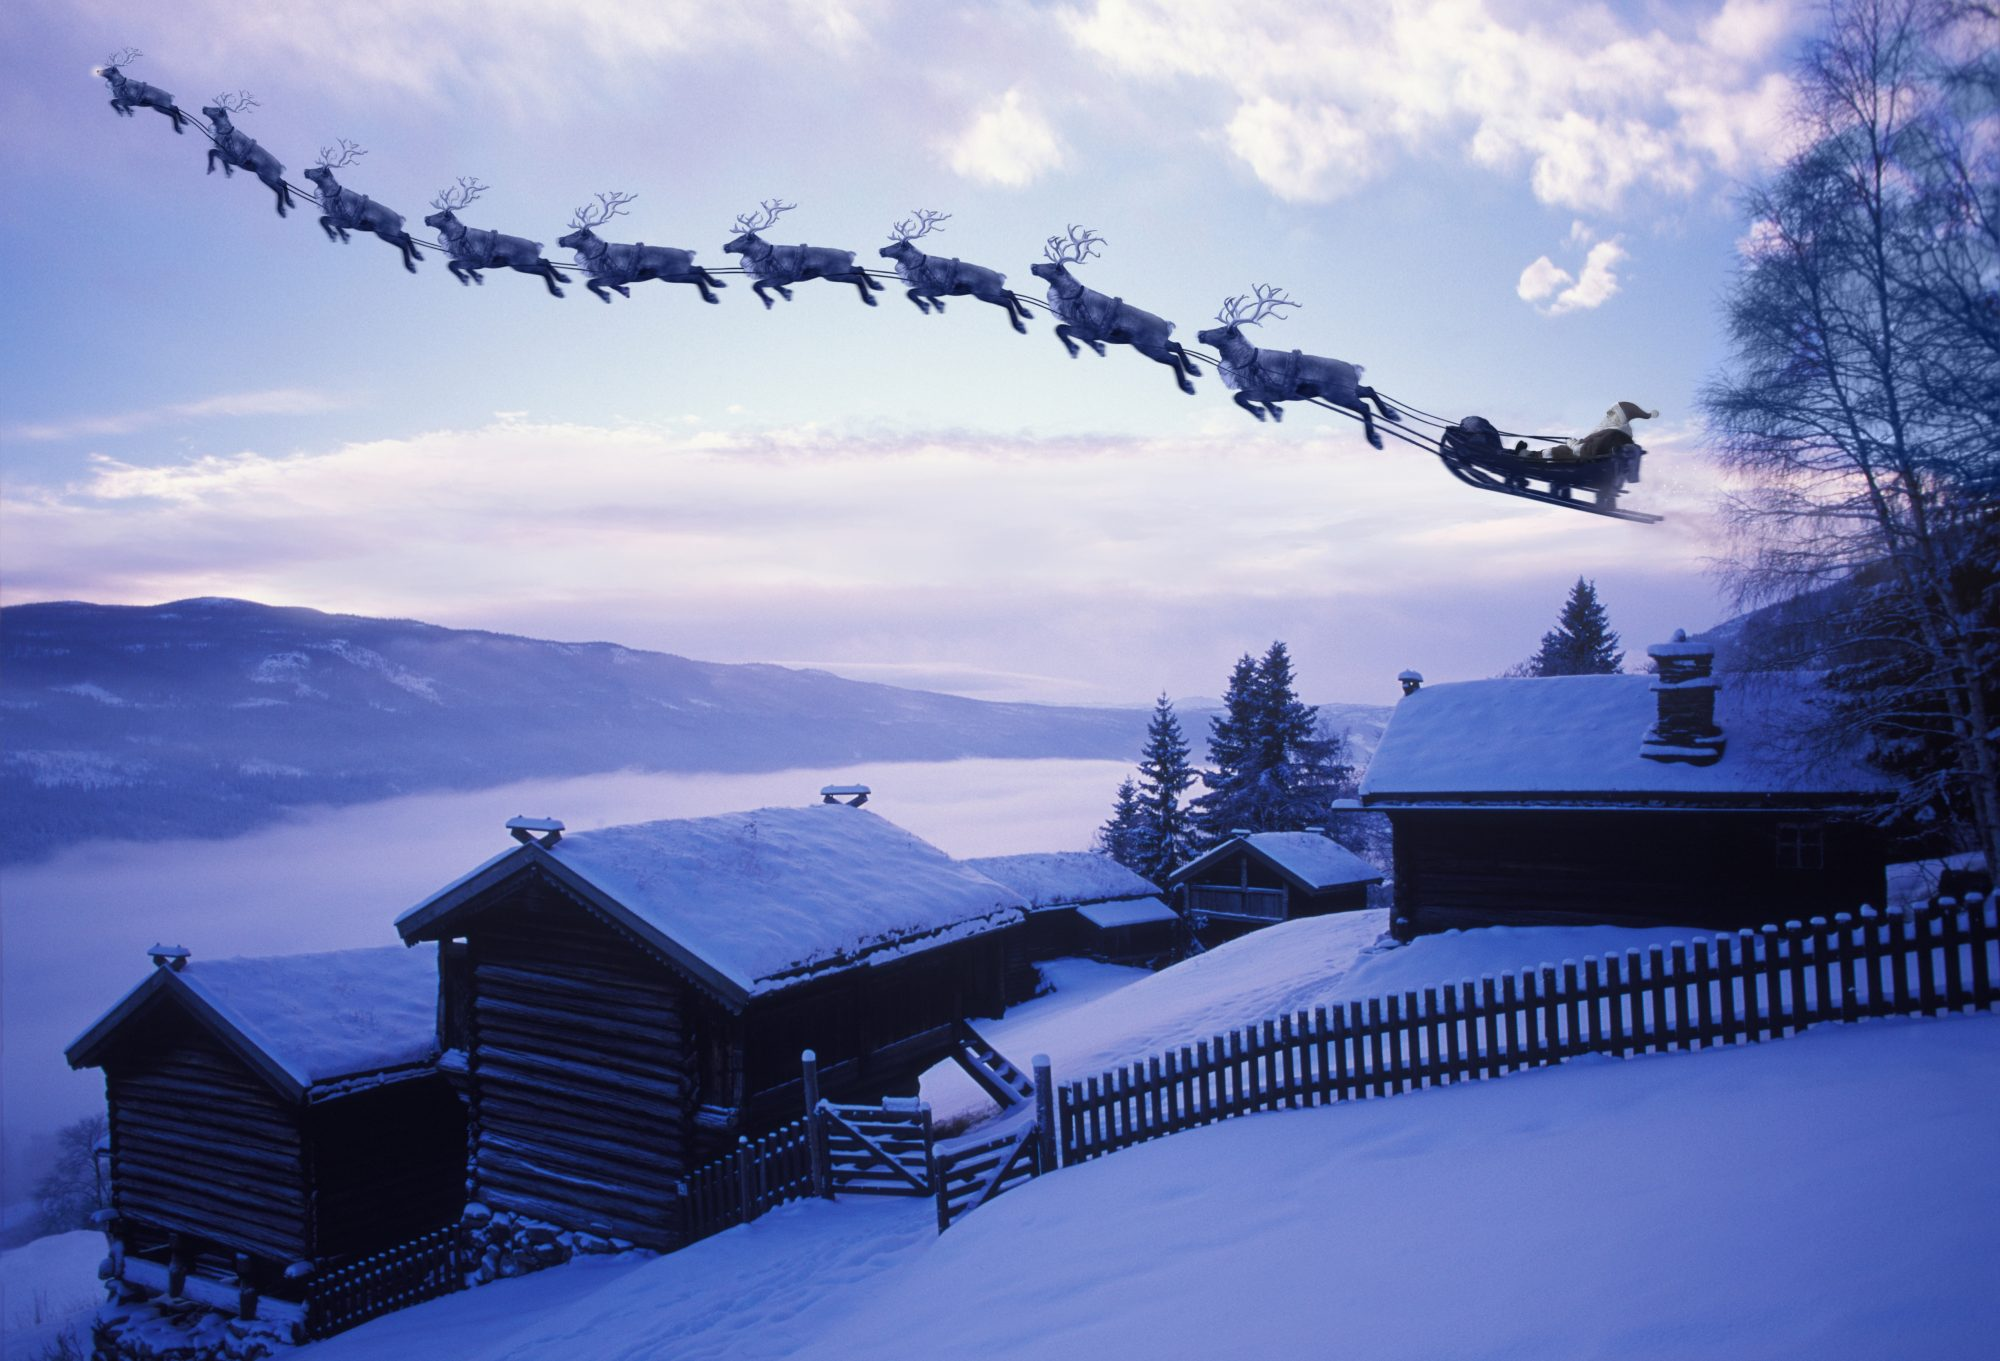 santa and reindeer flying over town in sleigh